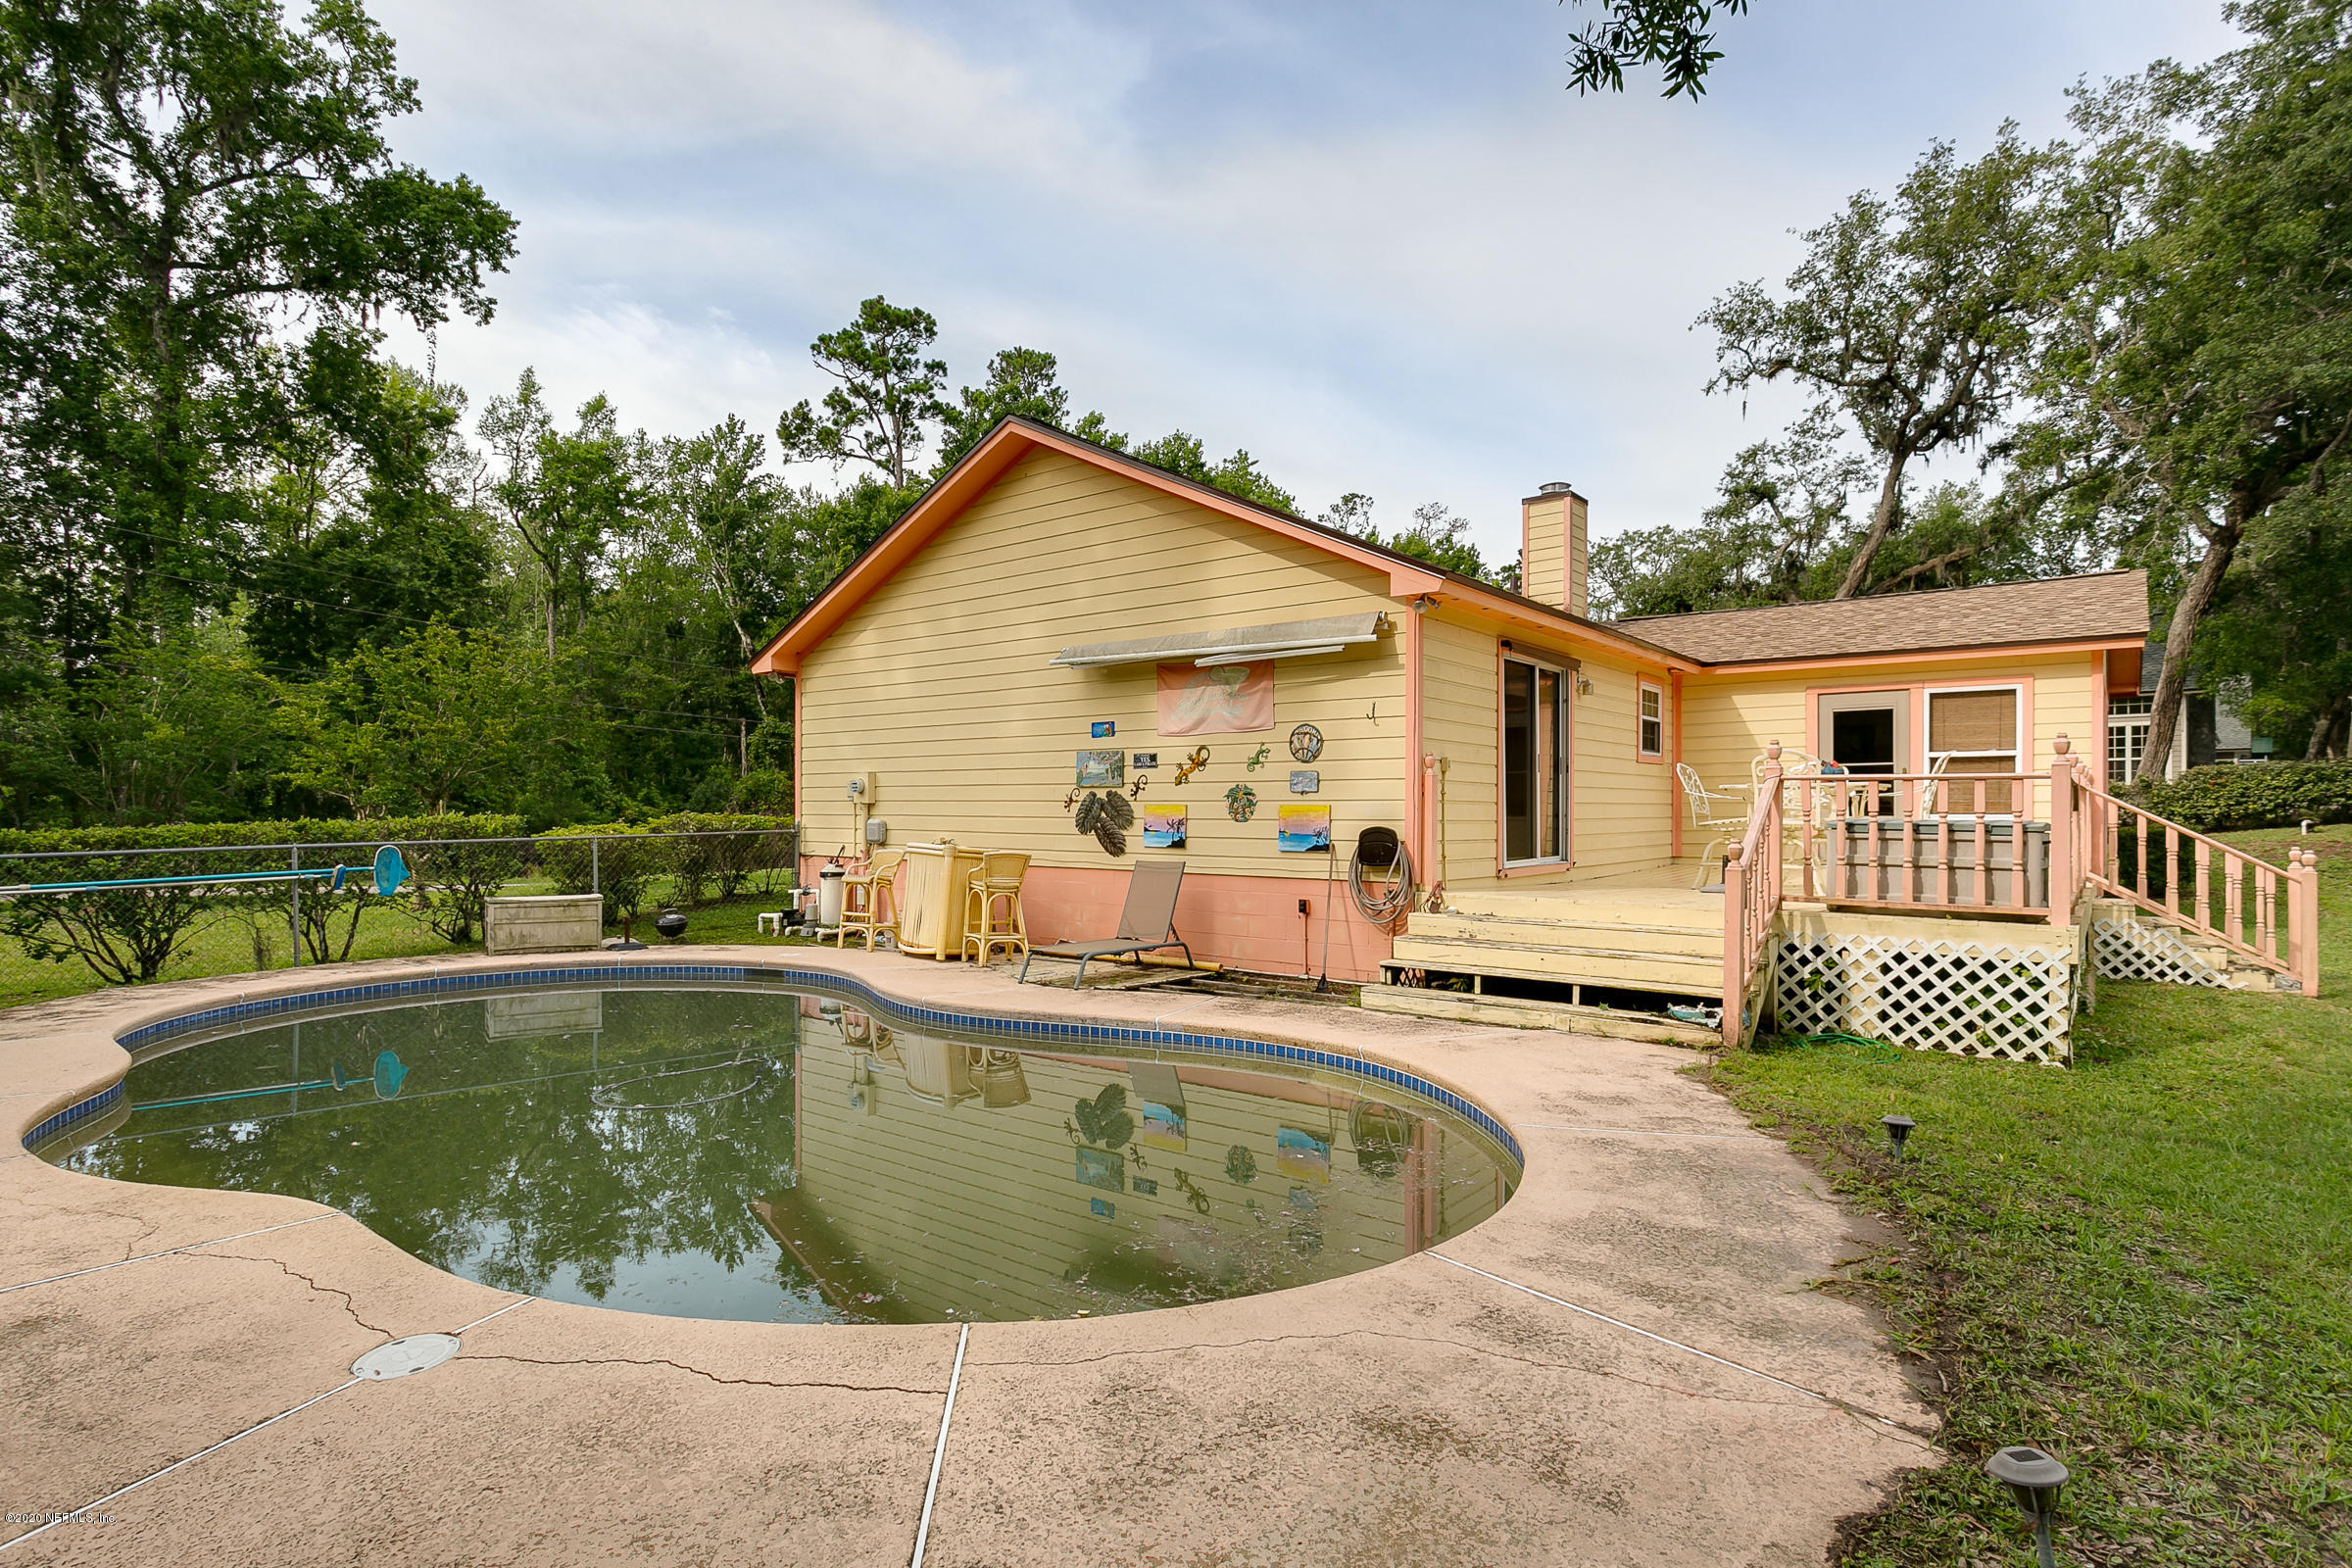 2812 OAKLAND, GREEN COVE SPRINGS, FLORIDA 32043, 3 Bedrooms Bedrooms, ,2 BathroomsBathrooms,Residential,For sale,OAKLAND,1059941